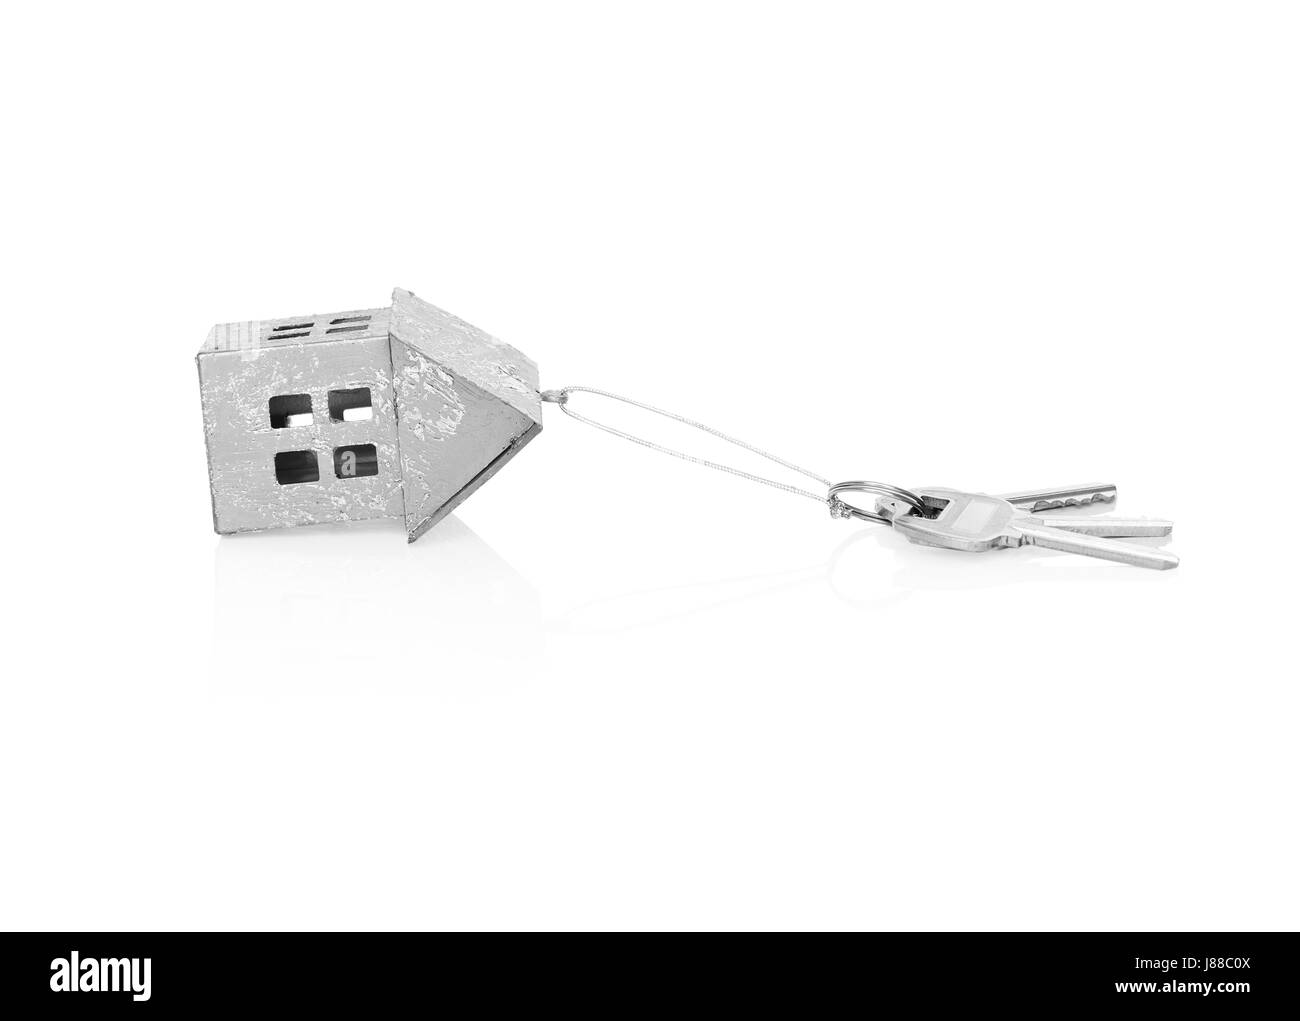 Layout of a house with keys - Stock Image